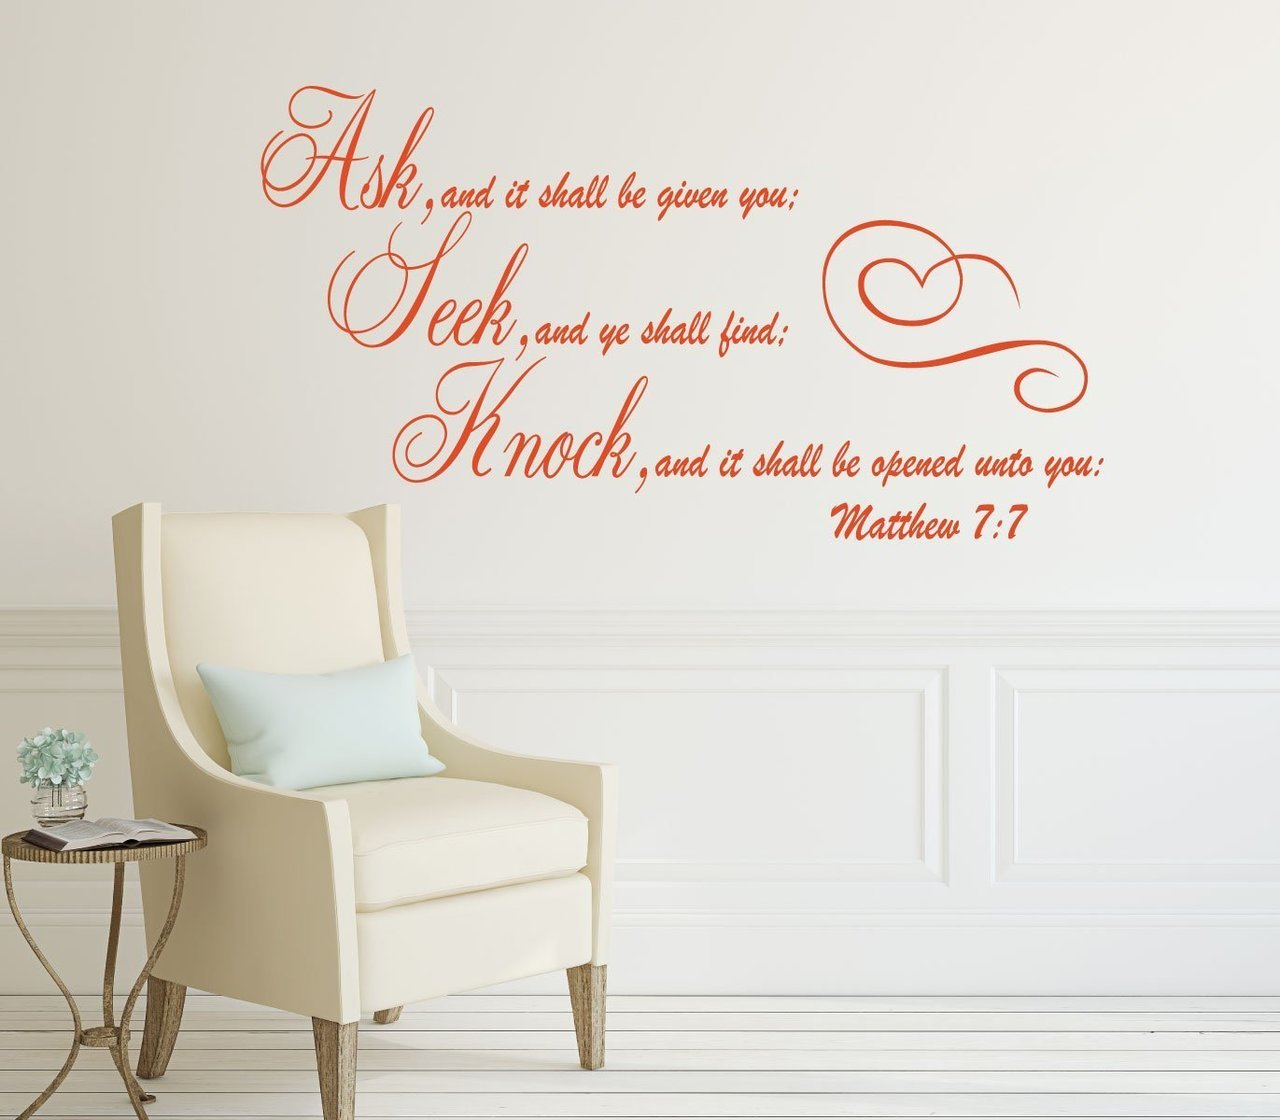 Bible Verses Wall Decals - Ask, Seek, Knock - Matthew 7:7 Scripture Home Decor Lettering